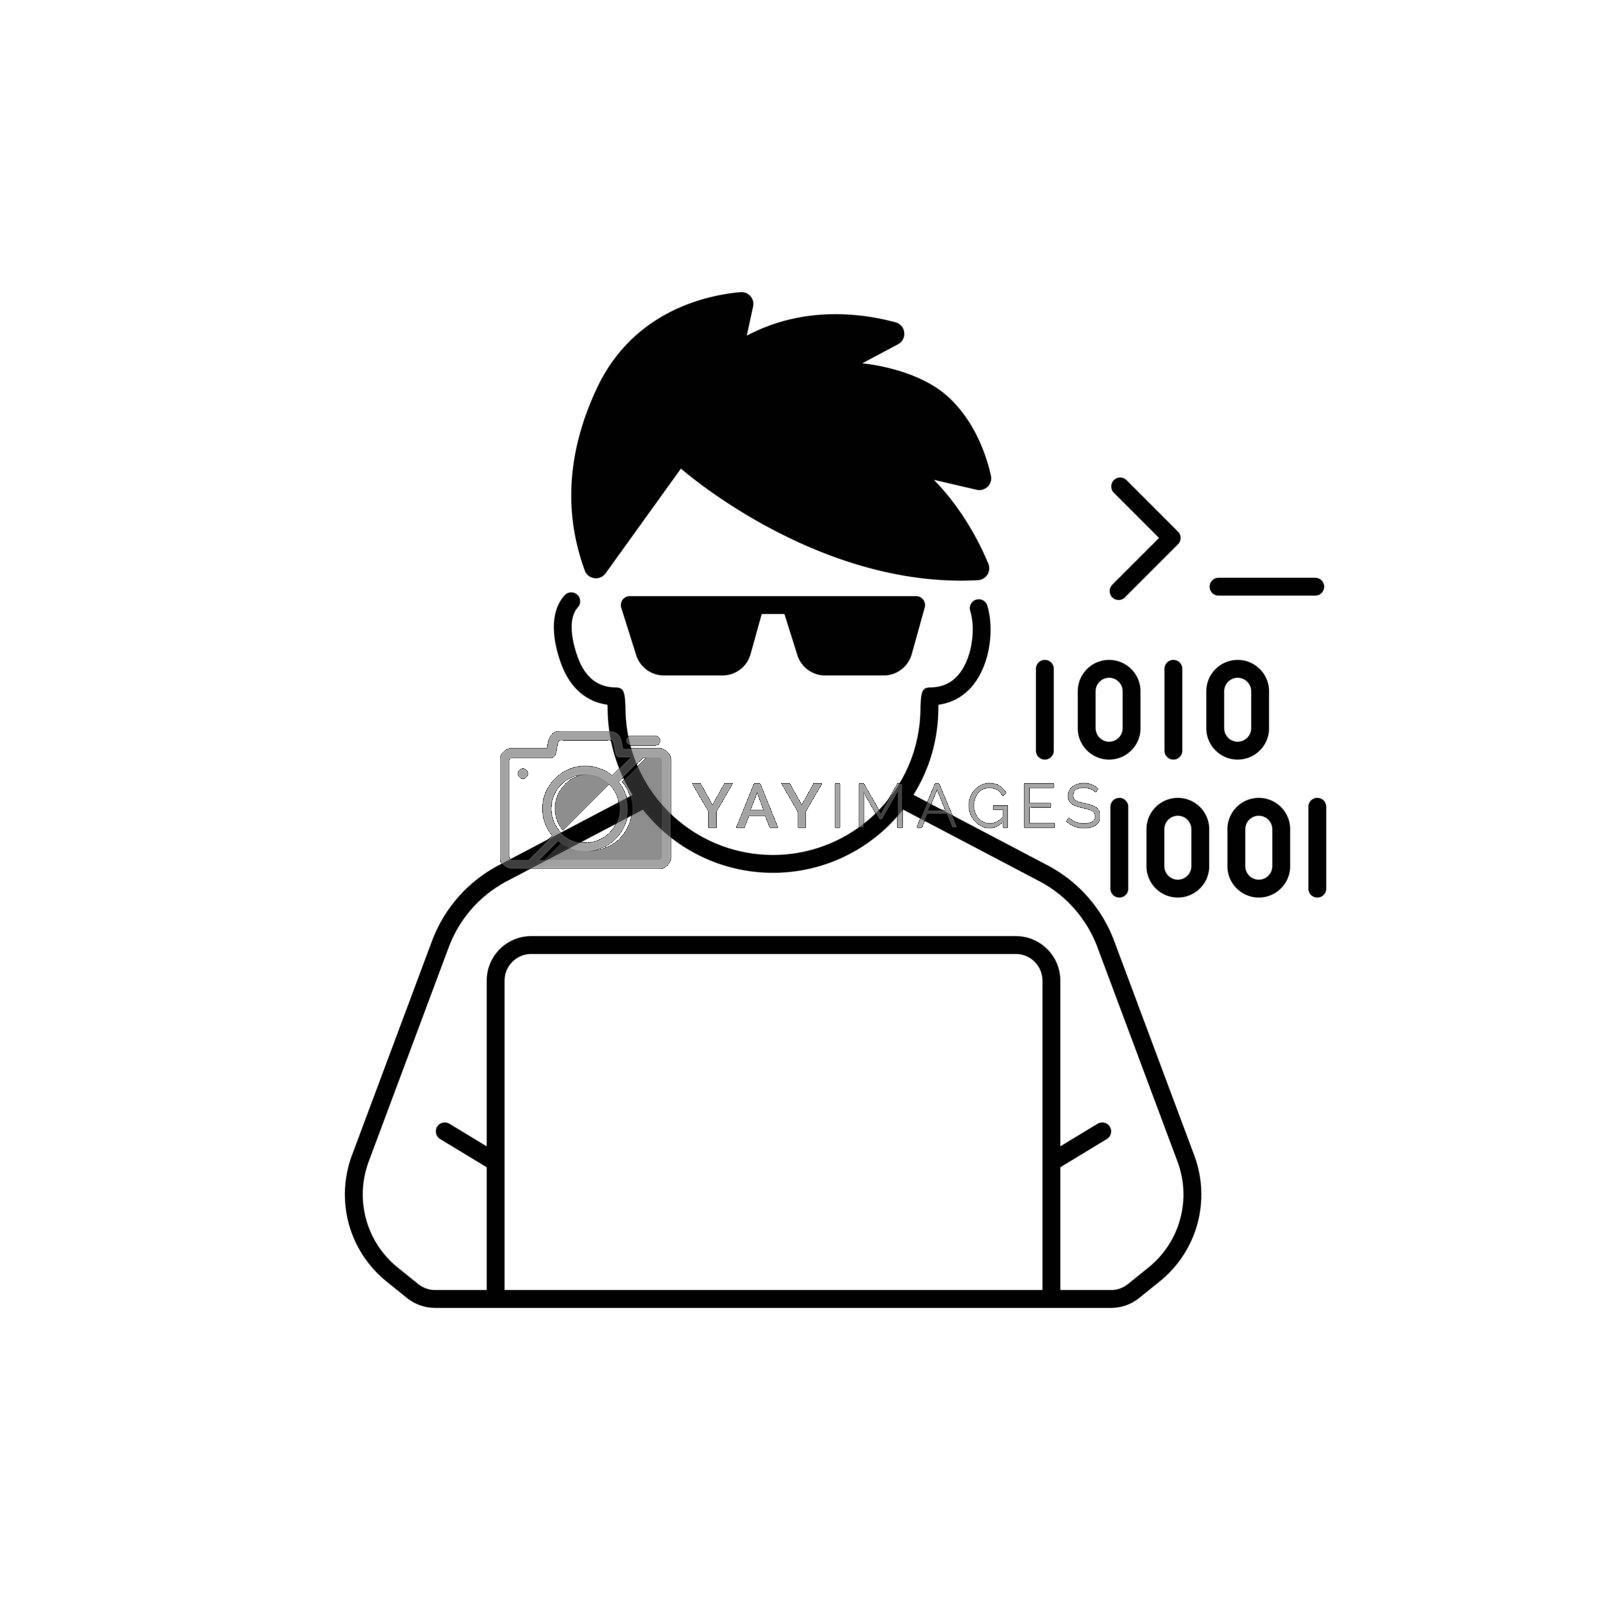 Programmer, computer expert black linear icon. Man coding on laptop. Freelance software developer at work. Coder at laptop. Social class. Outline symbol on white space. Vector isolated illustration